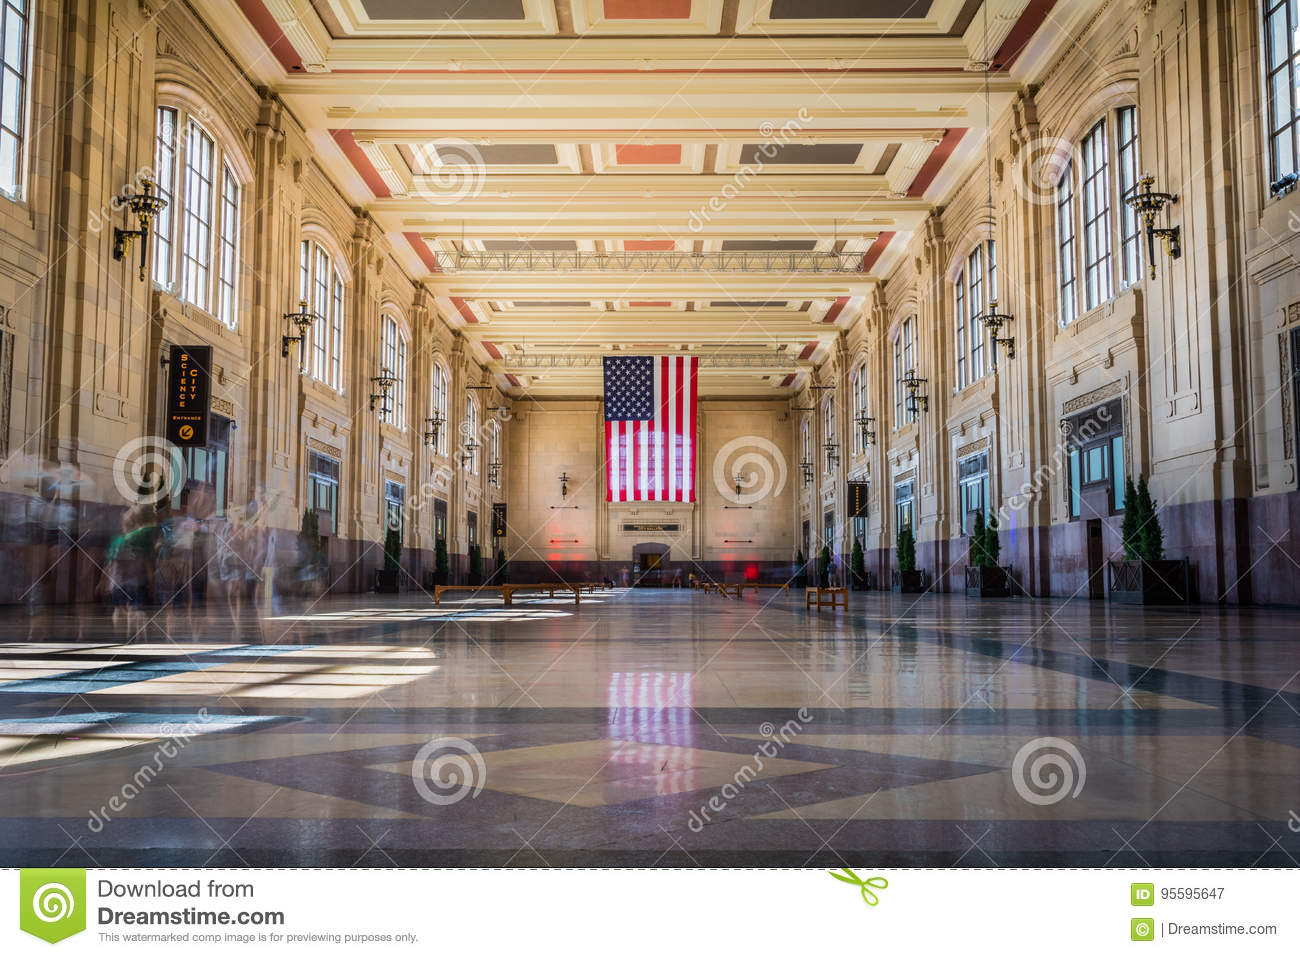 Union Station with American Flag